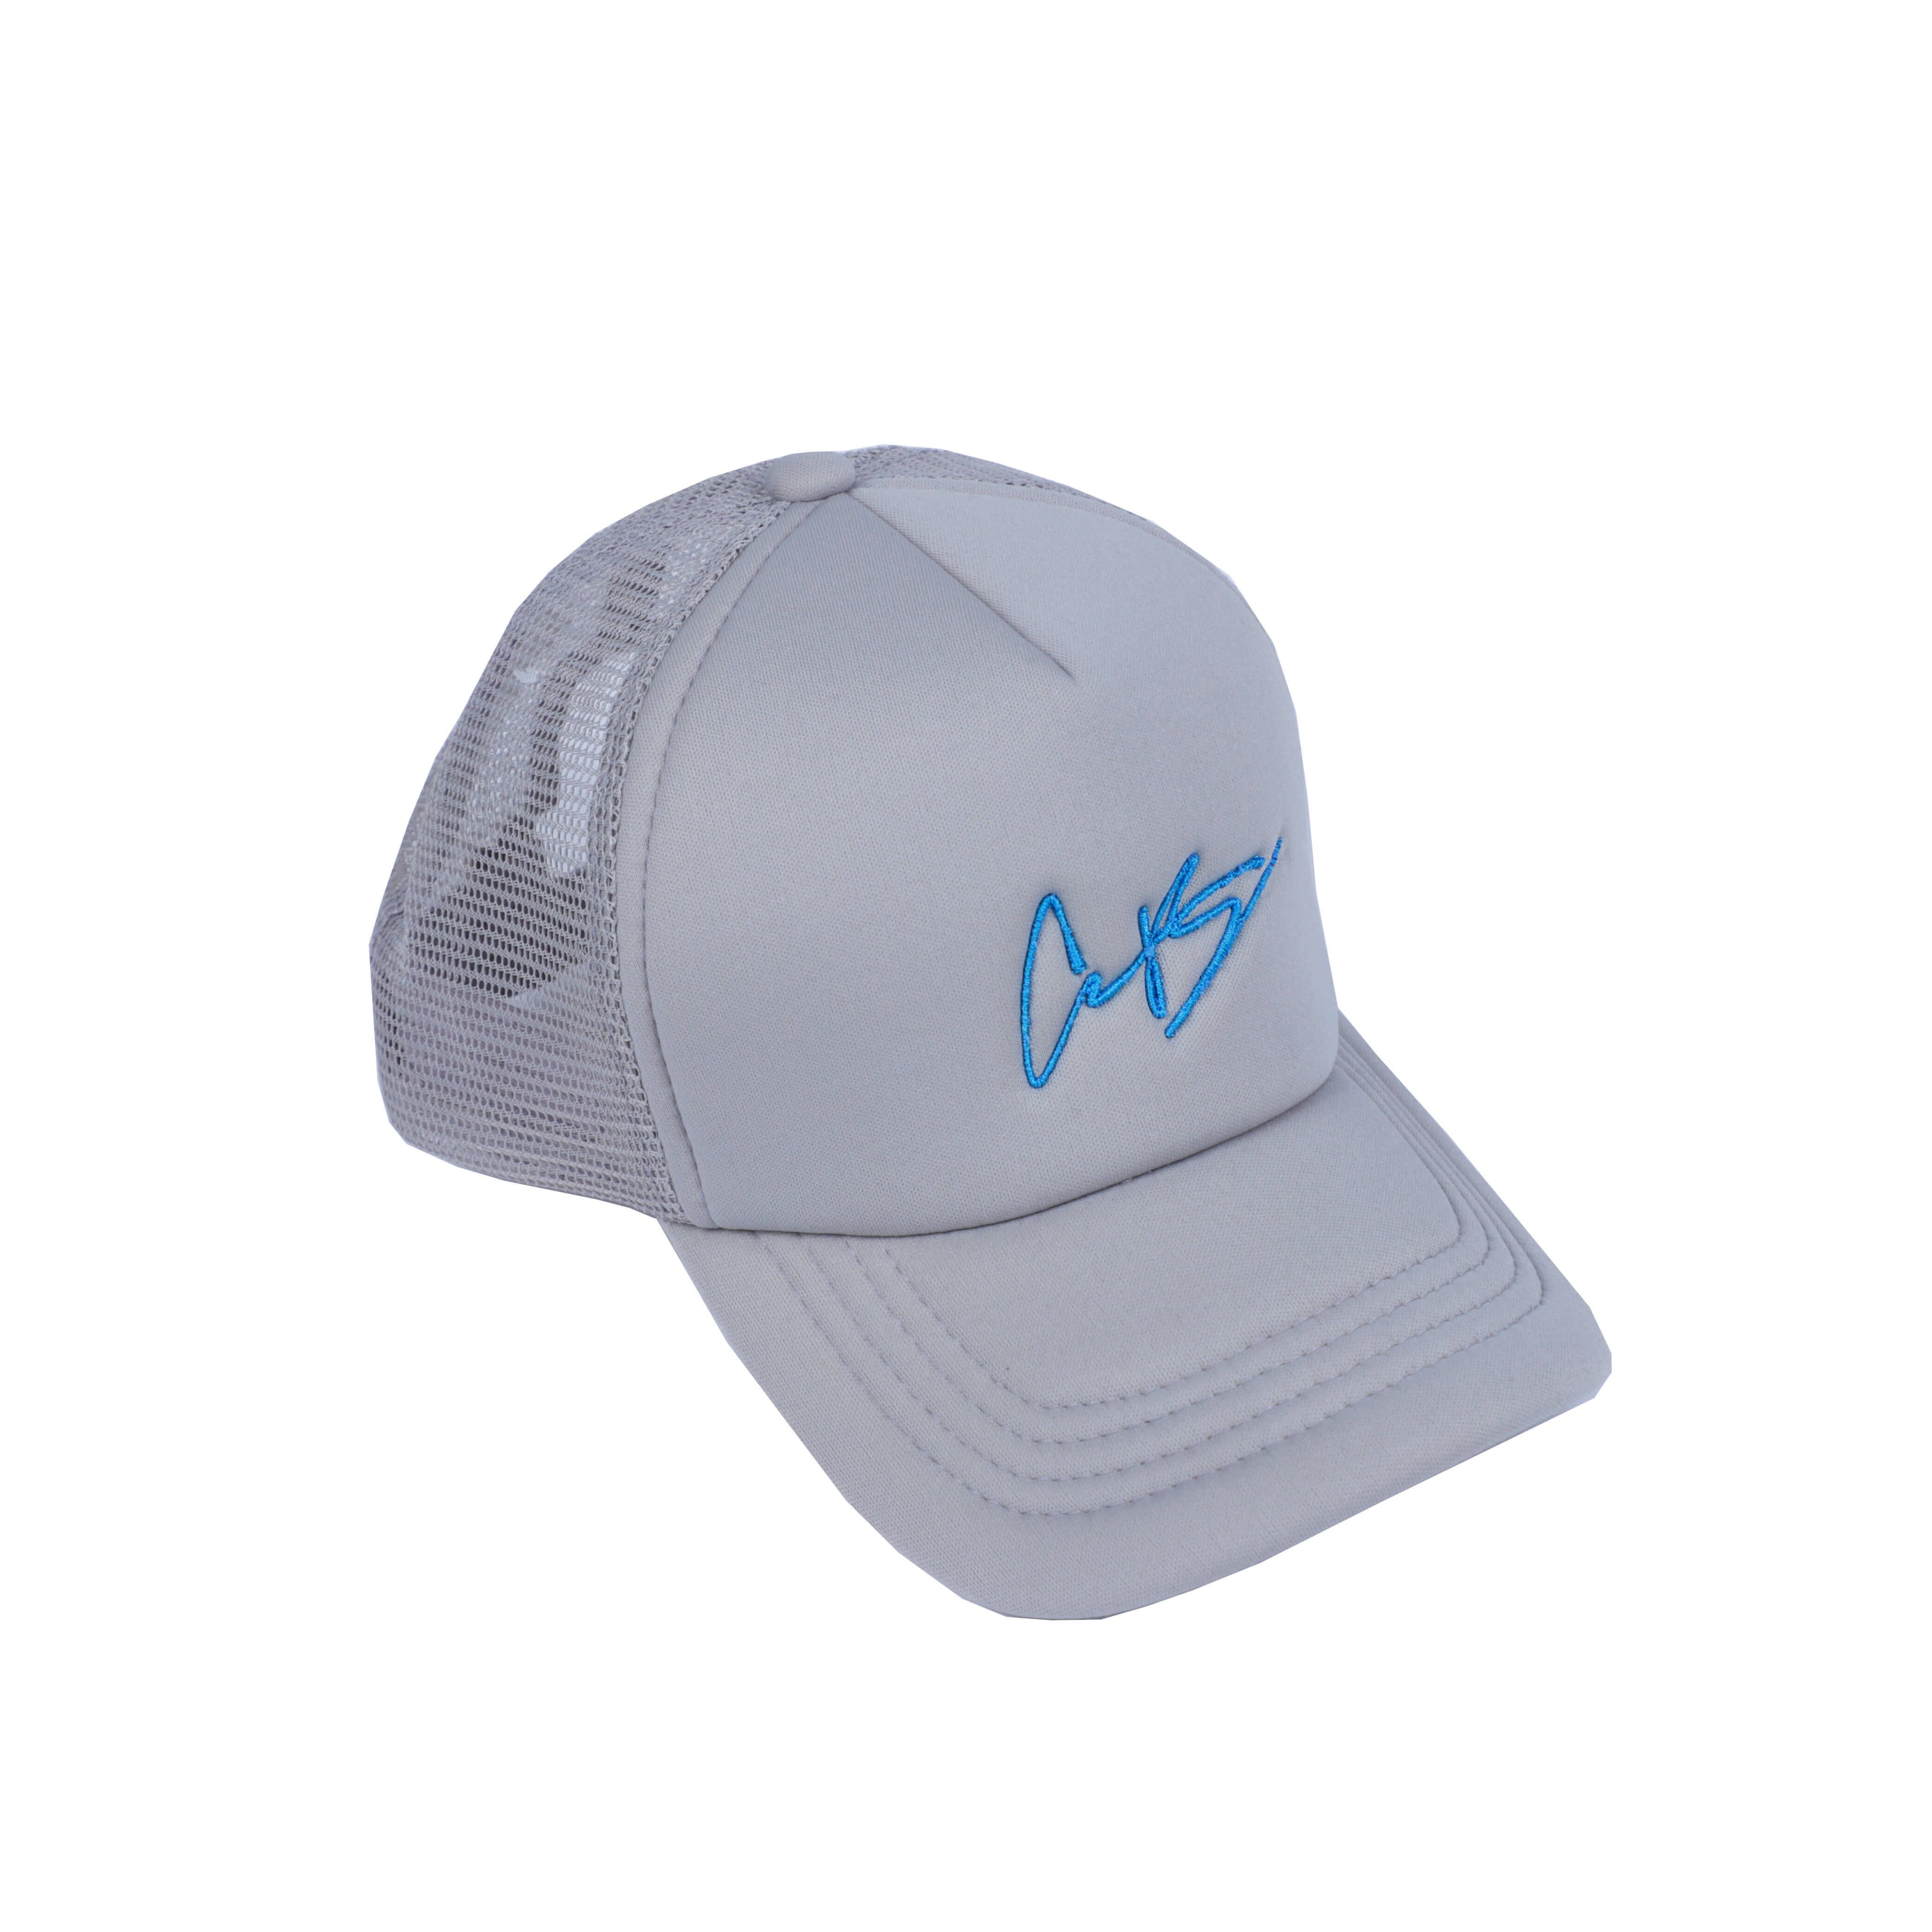 "CB Signature "" California Blue"" Trucker Cap."